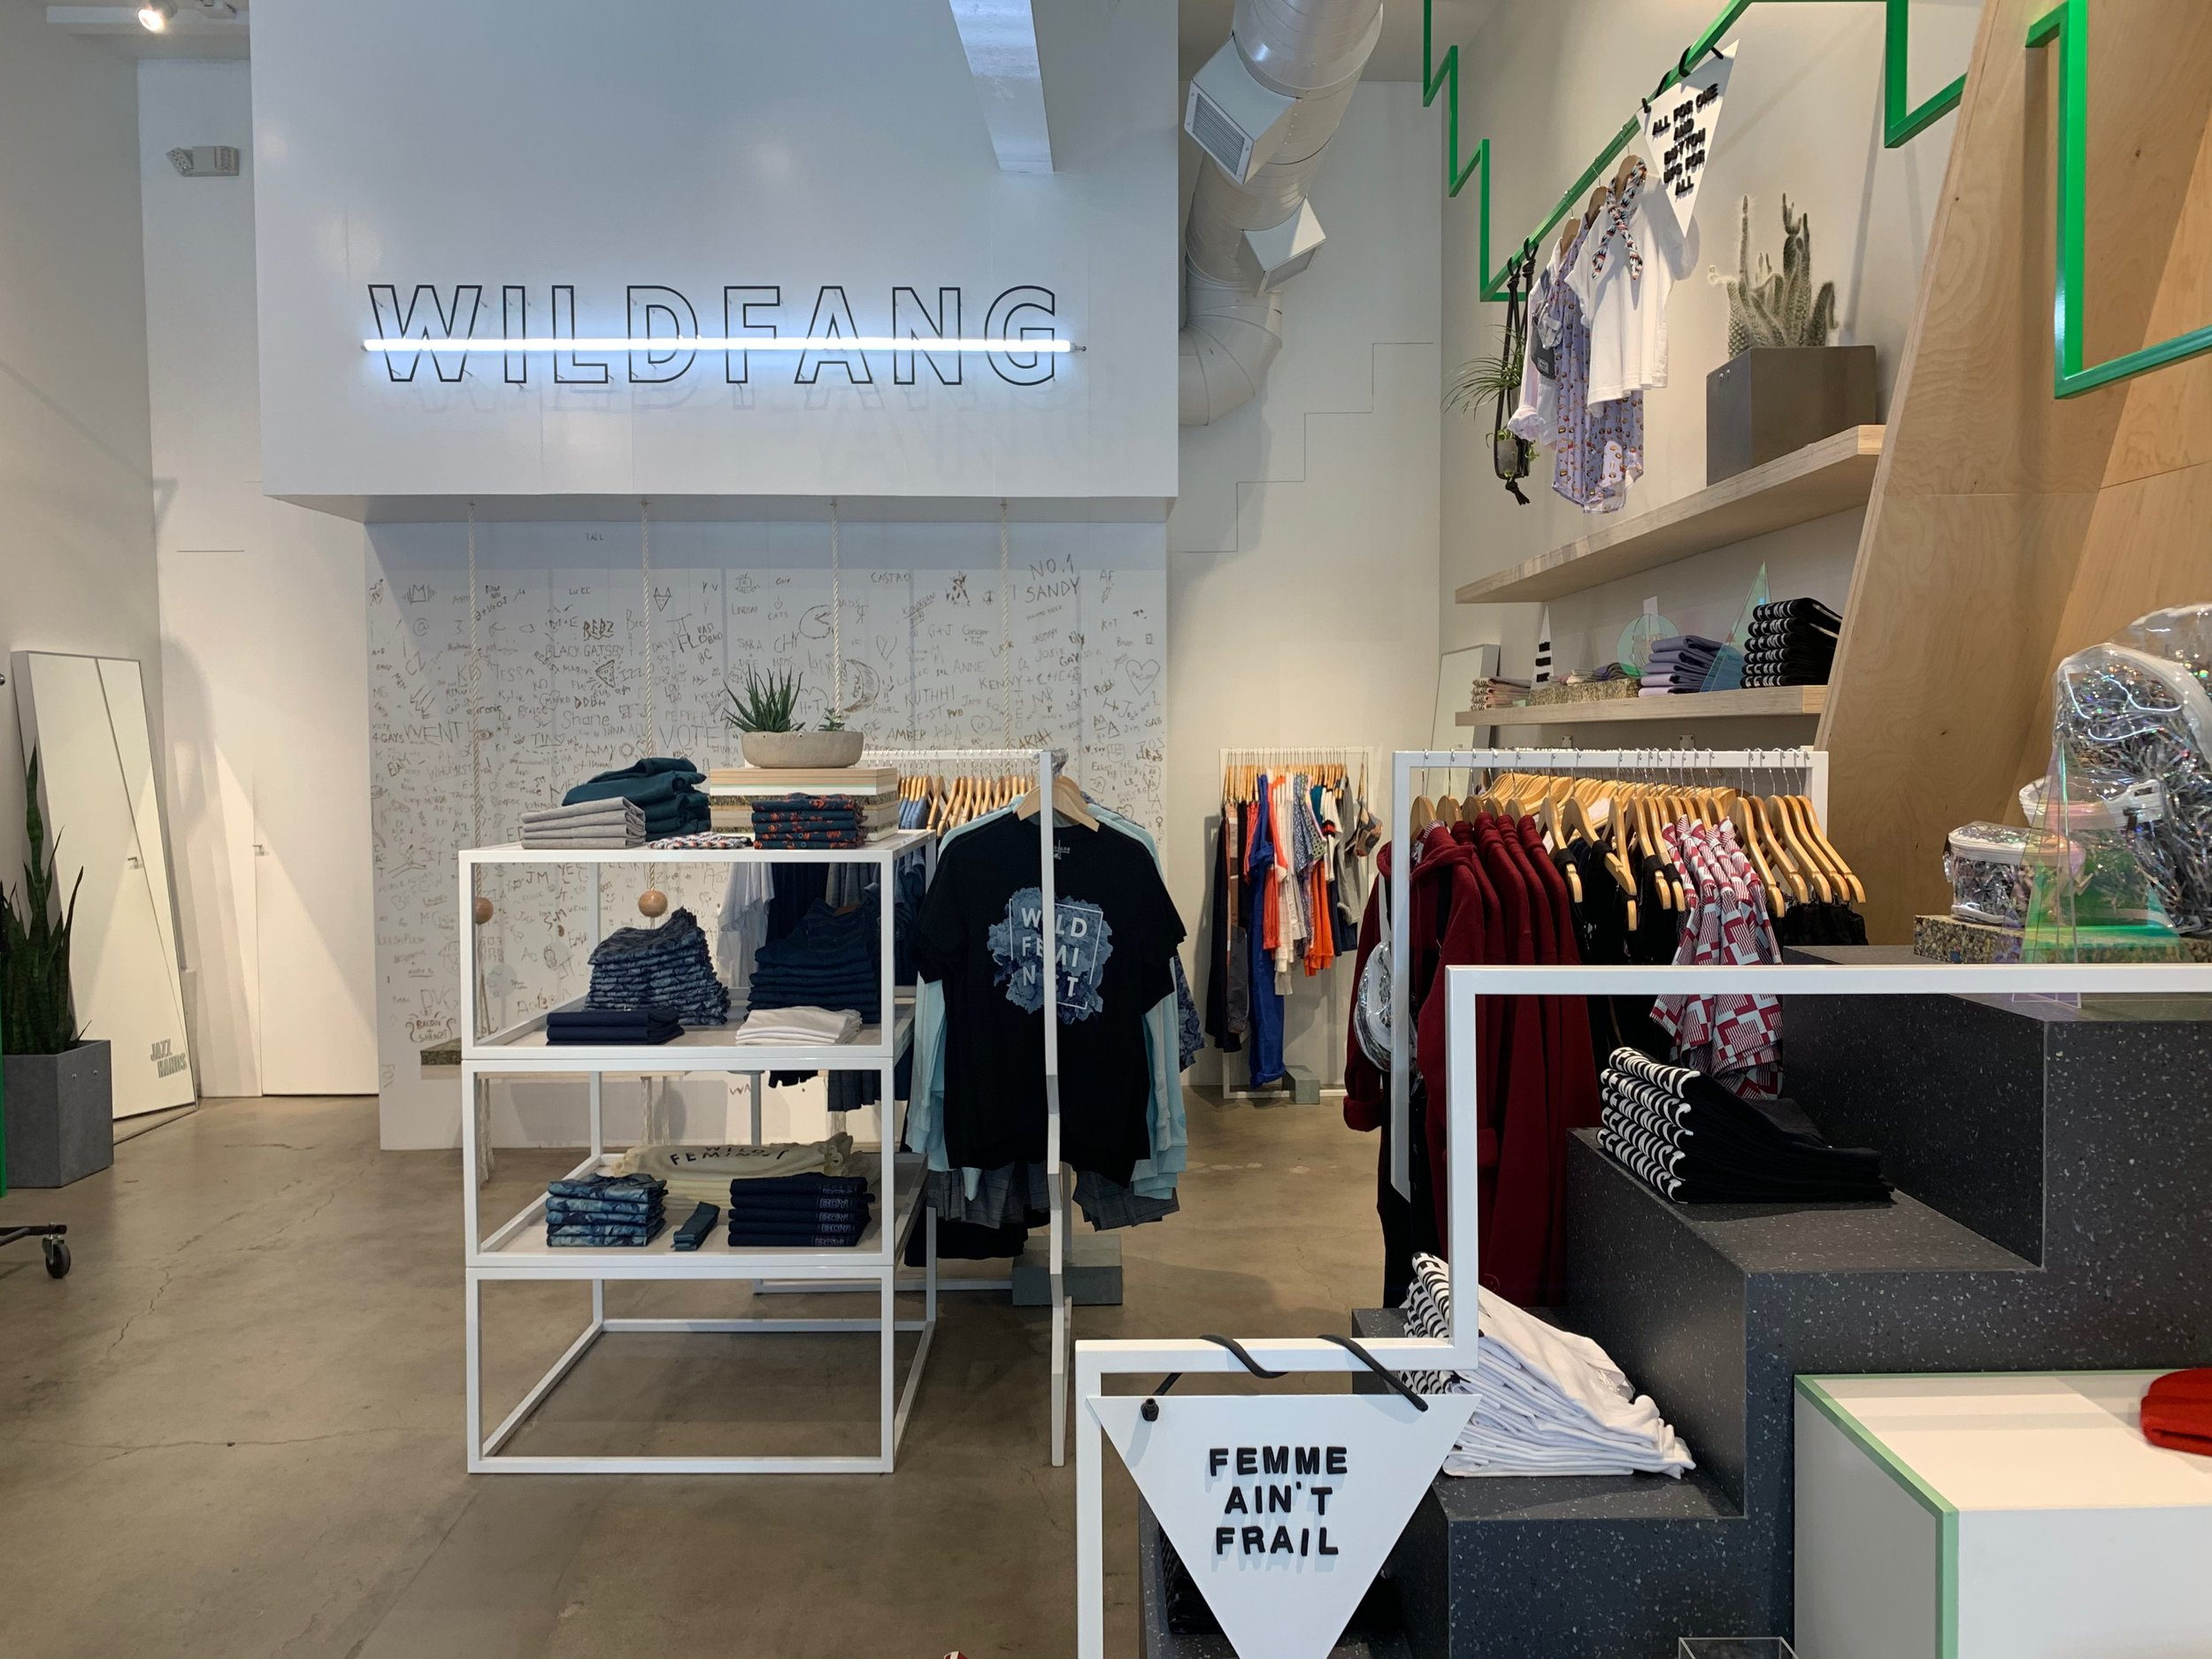 At  Wild Fang , the entire philosophy revolves around women being able to wear whatever they please — no ifs, ands, or buts about it. And while the company was created by women, is run by women, and is geared toward the female customer, they still sell items that could be worn by anyone, such as the grey beanie I purchased.